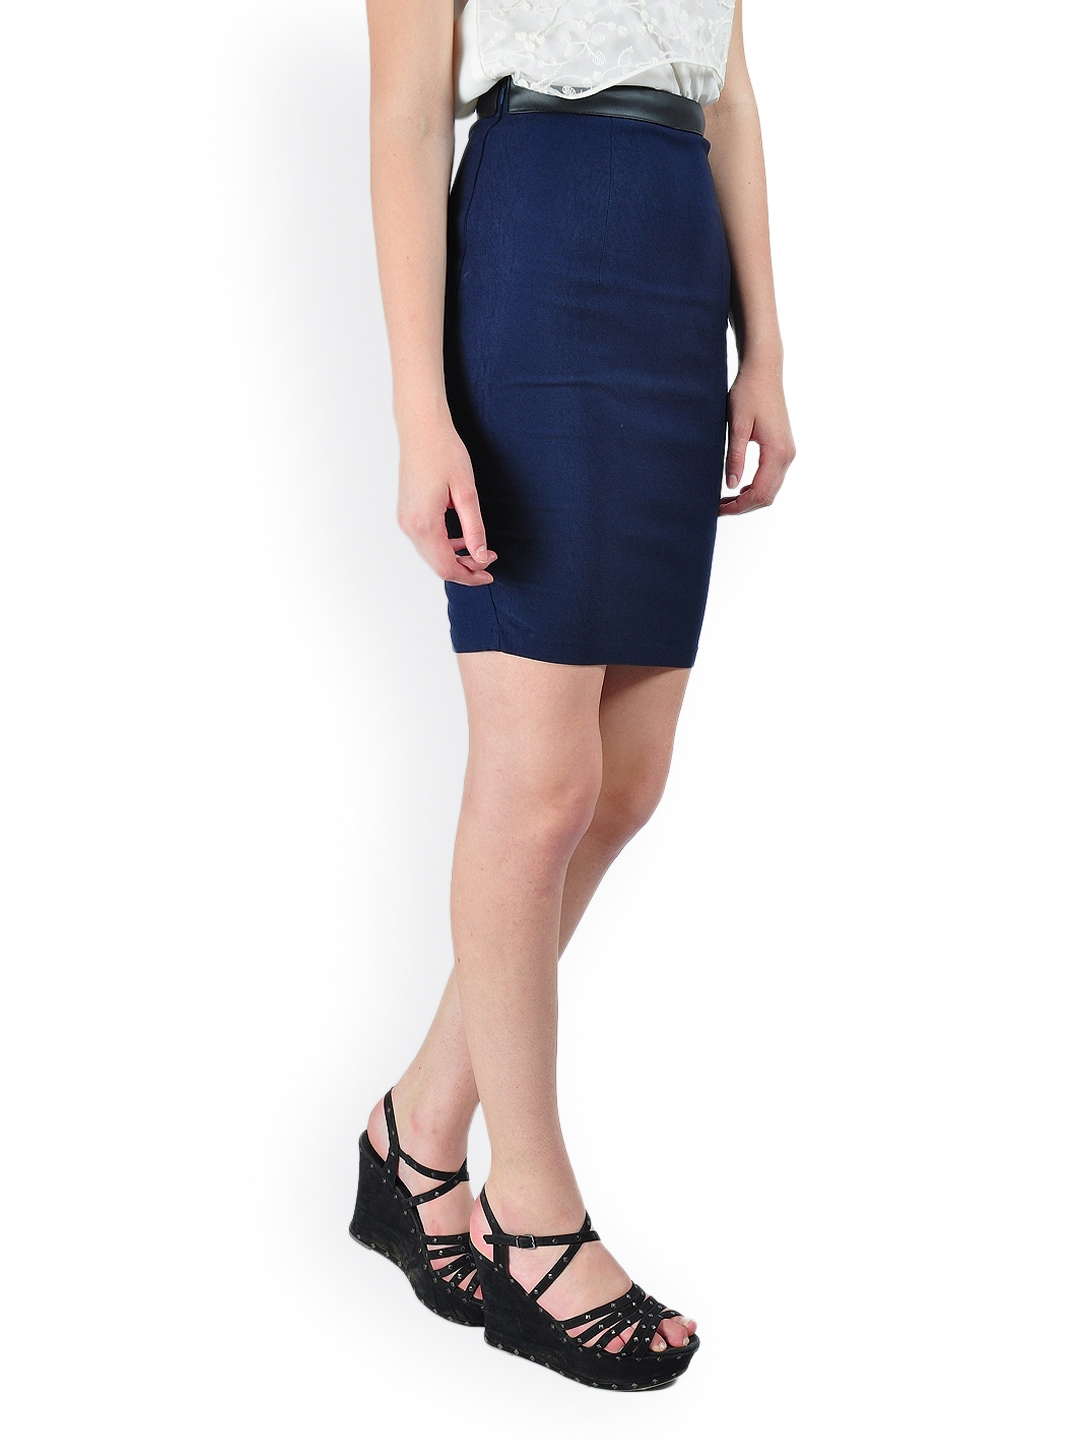 Overstock uses cookies to ensure you get the best experience on our site. If you continue on our site, you consent to the use of such cookies. Learn more. OK Skirts. Clothing & Shoes / Women NE PEOPLE Womens Solid Knee Length Work Office Pencil Skirts-NEWSK 2 Reviews.